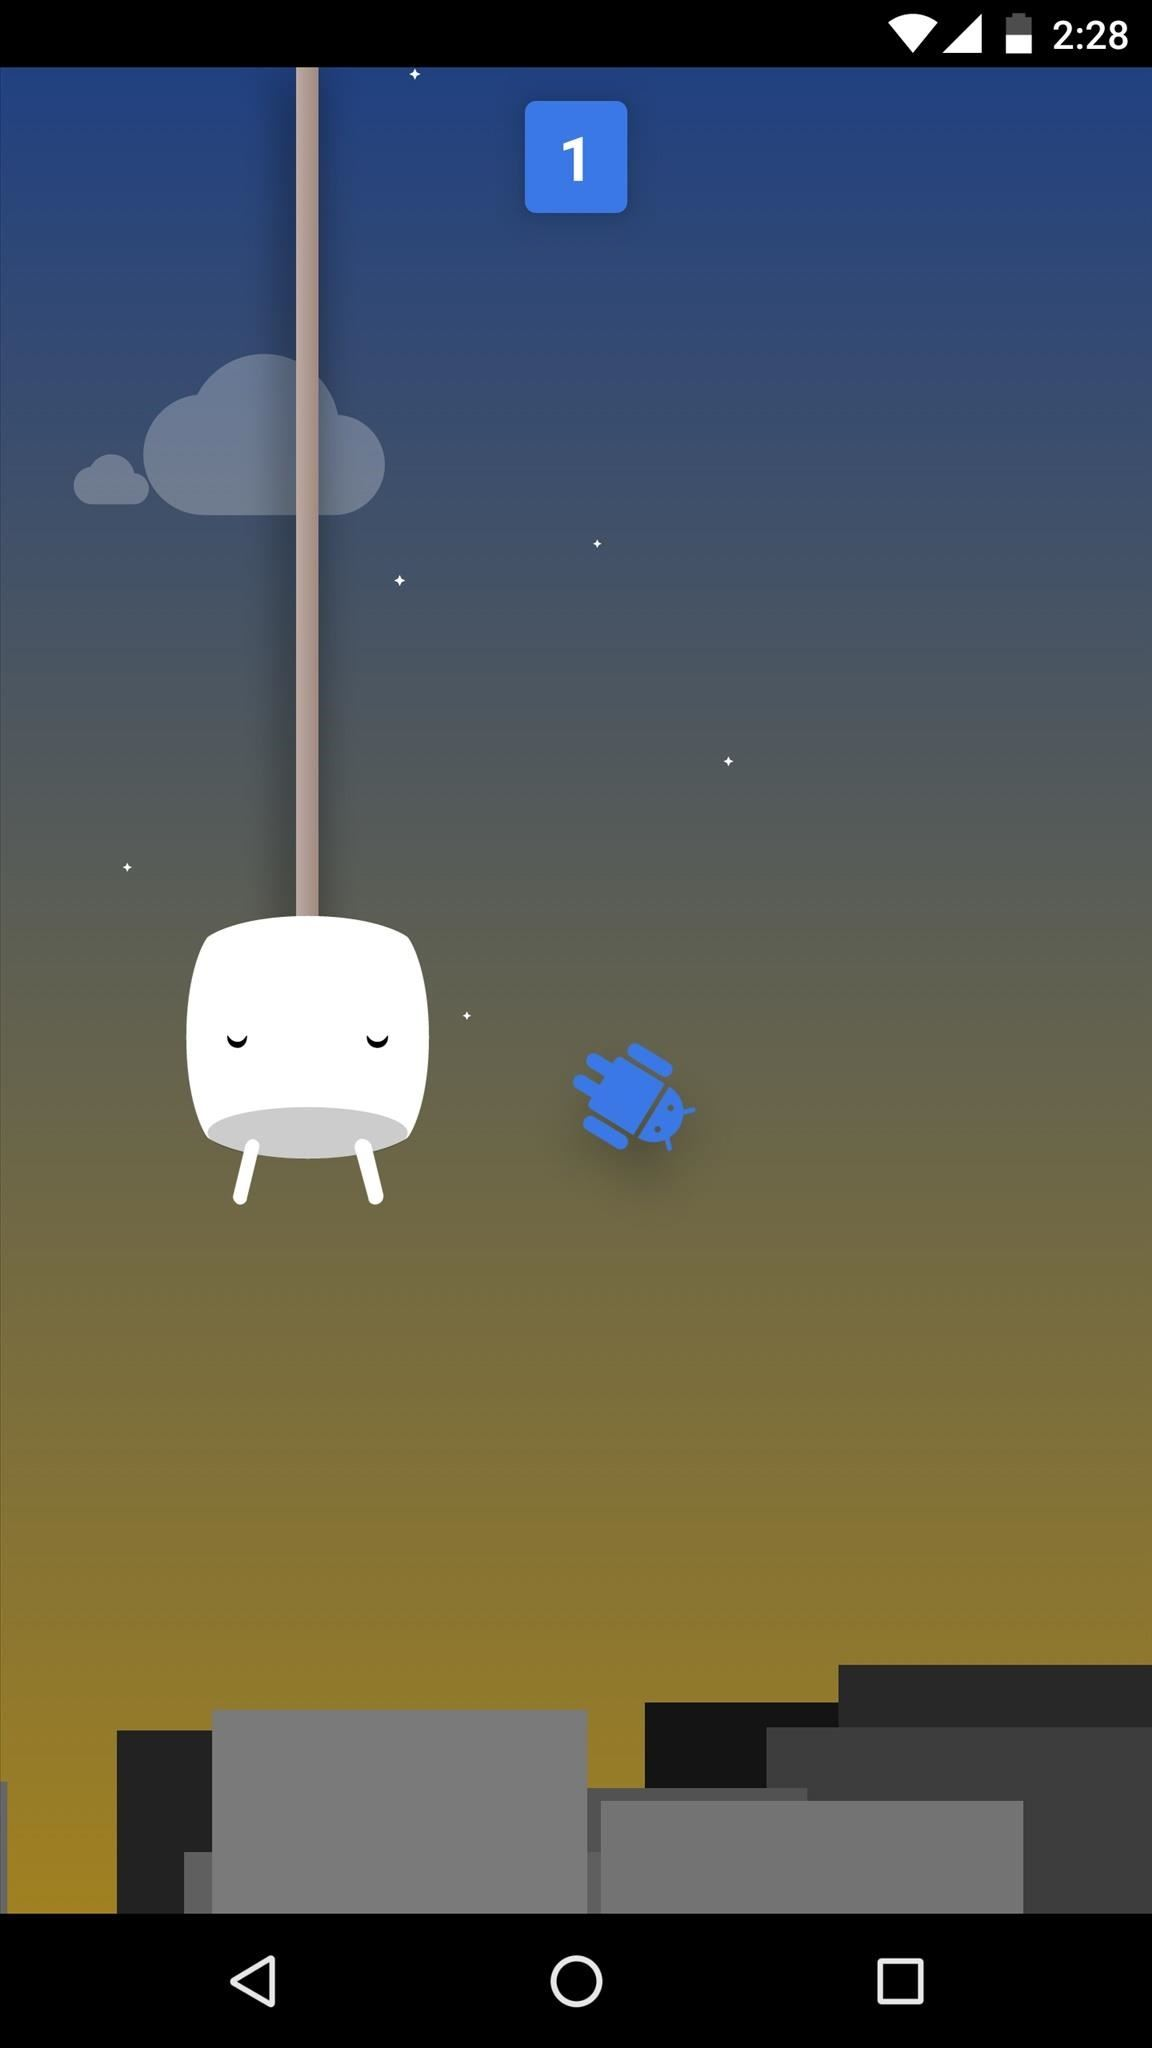 How to Cheat Android's Hidden Flappy Droid Game